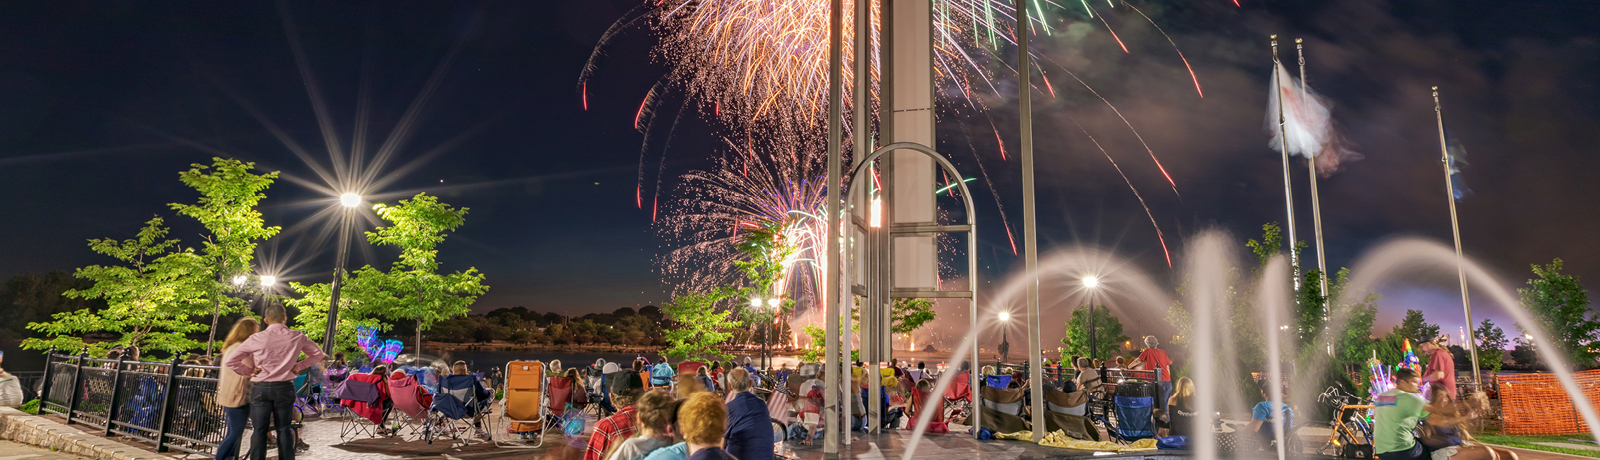 Great Lakes Events | Michigan Things to Do, Festivals & Museums